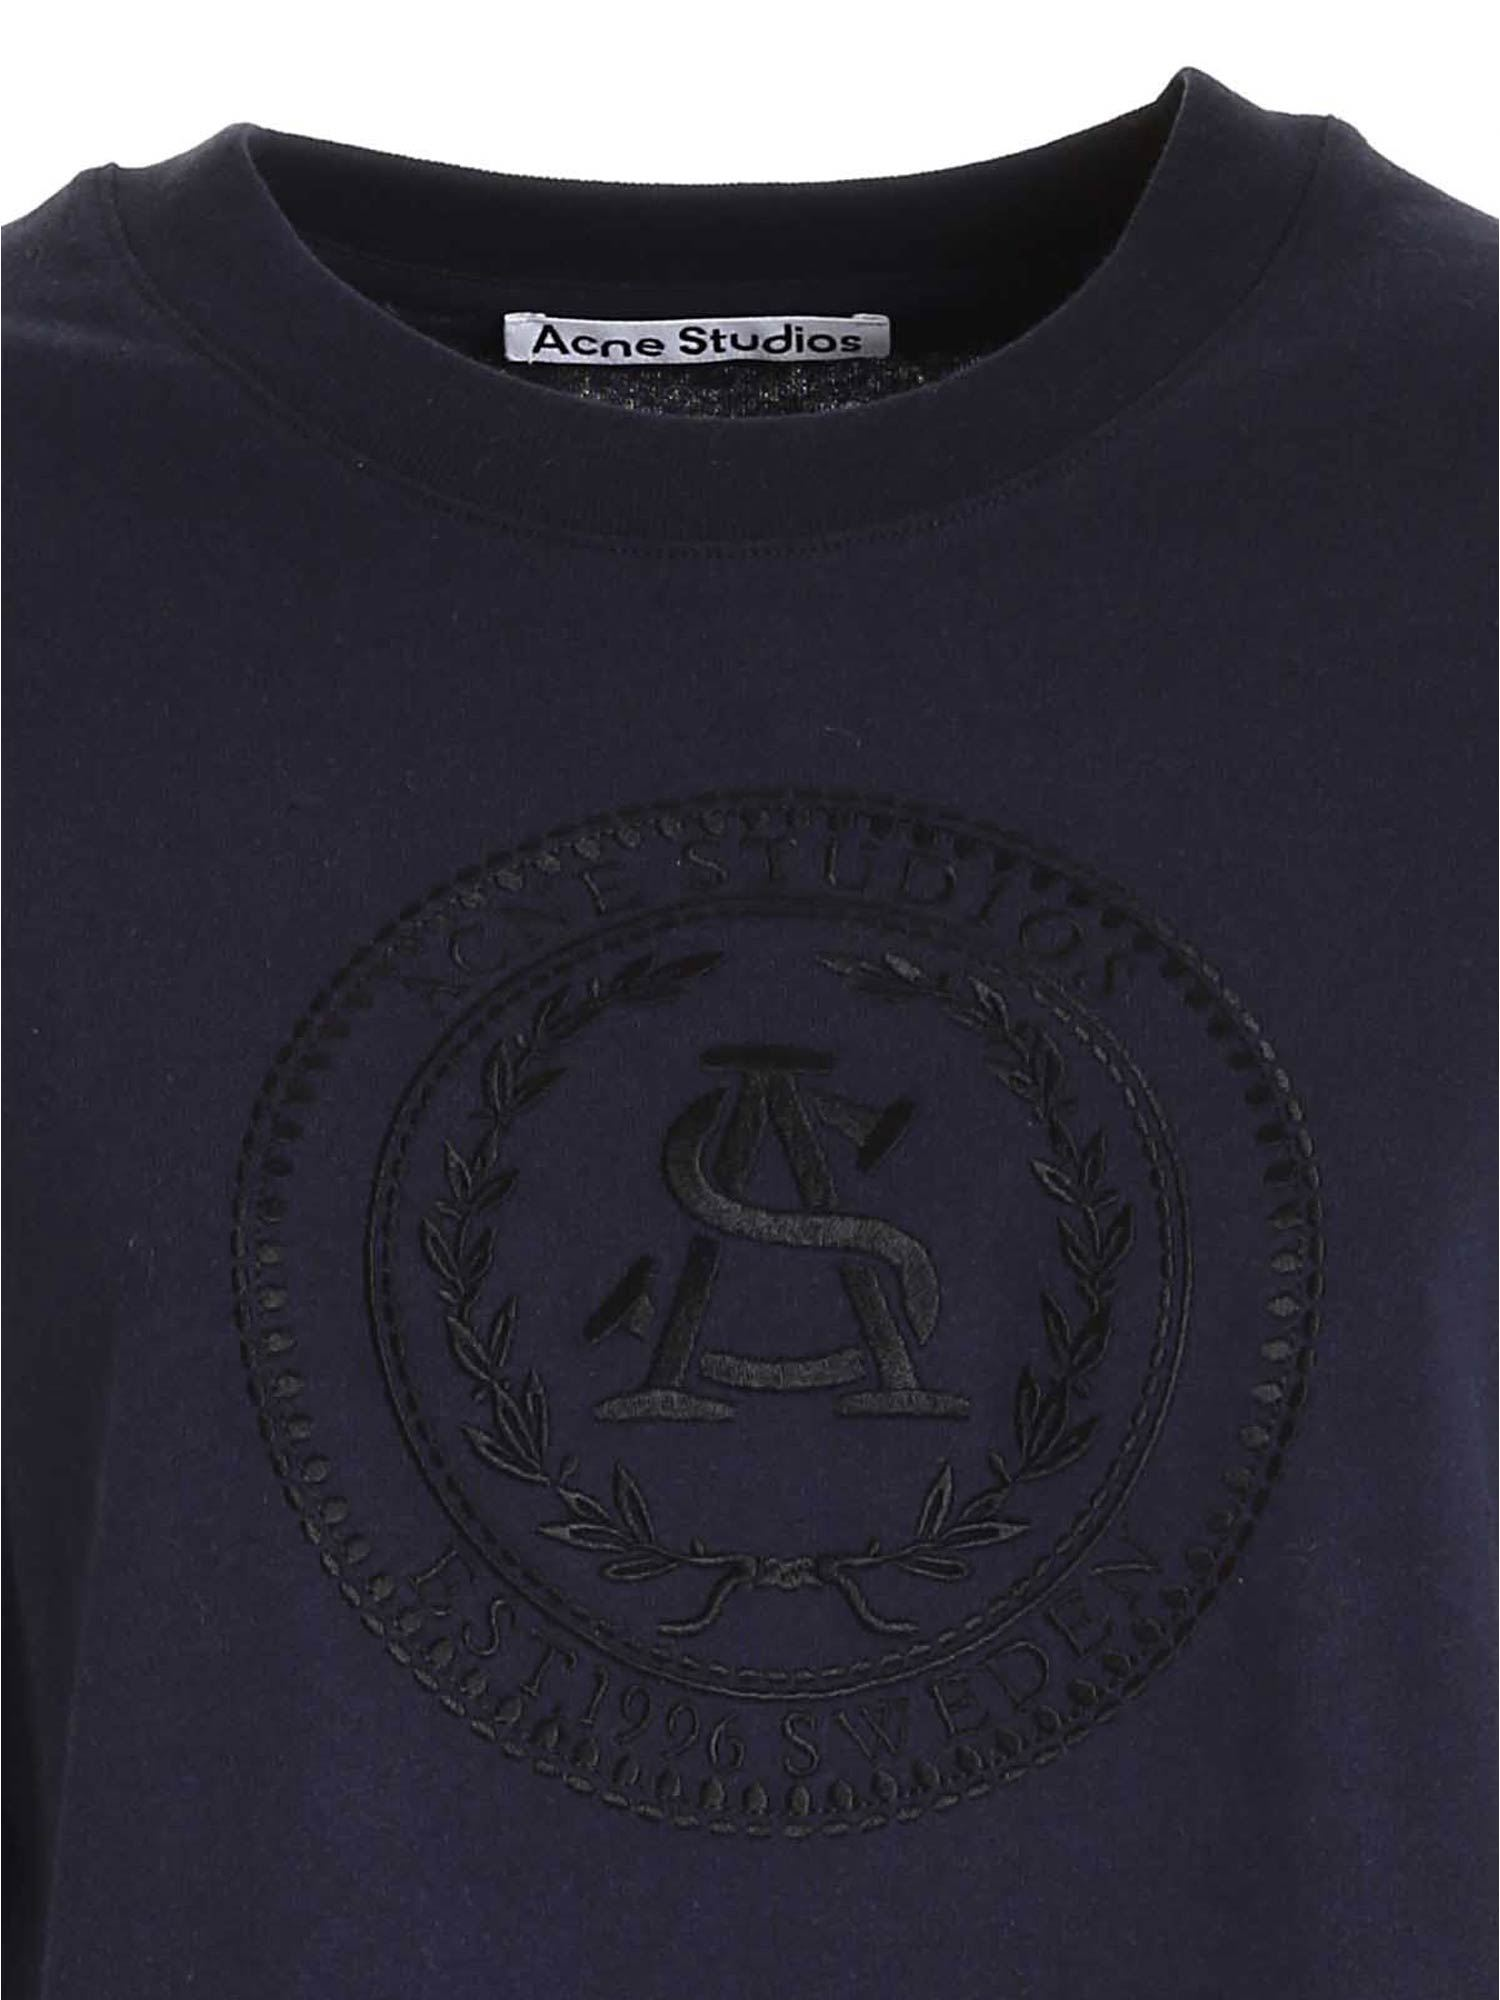 ACNE STUDIOS Cottons EMBROIDERY T-SHIRT IN BLUE